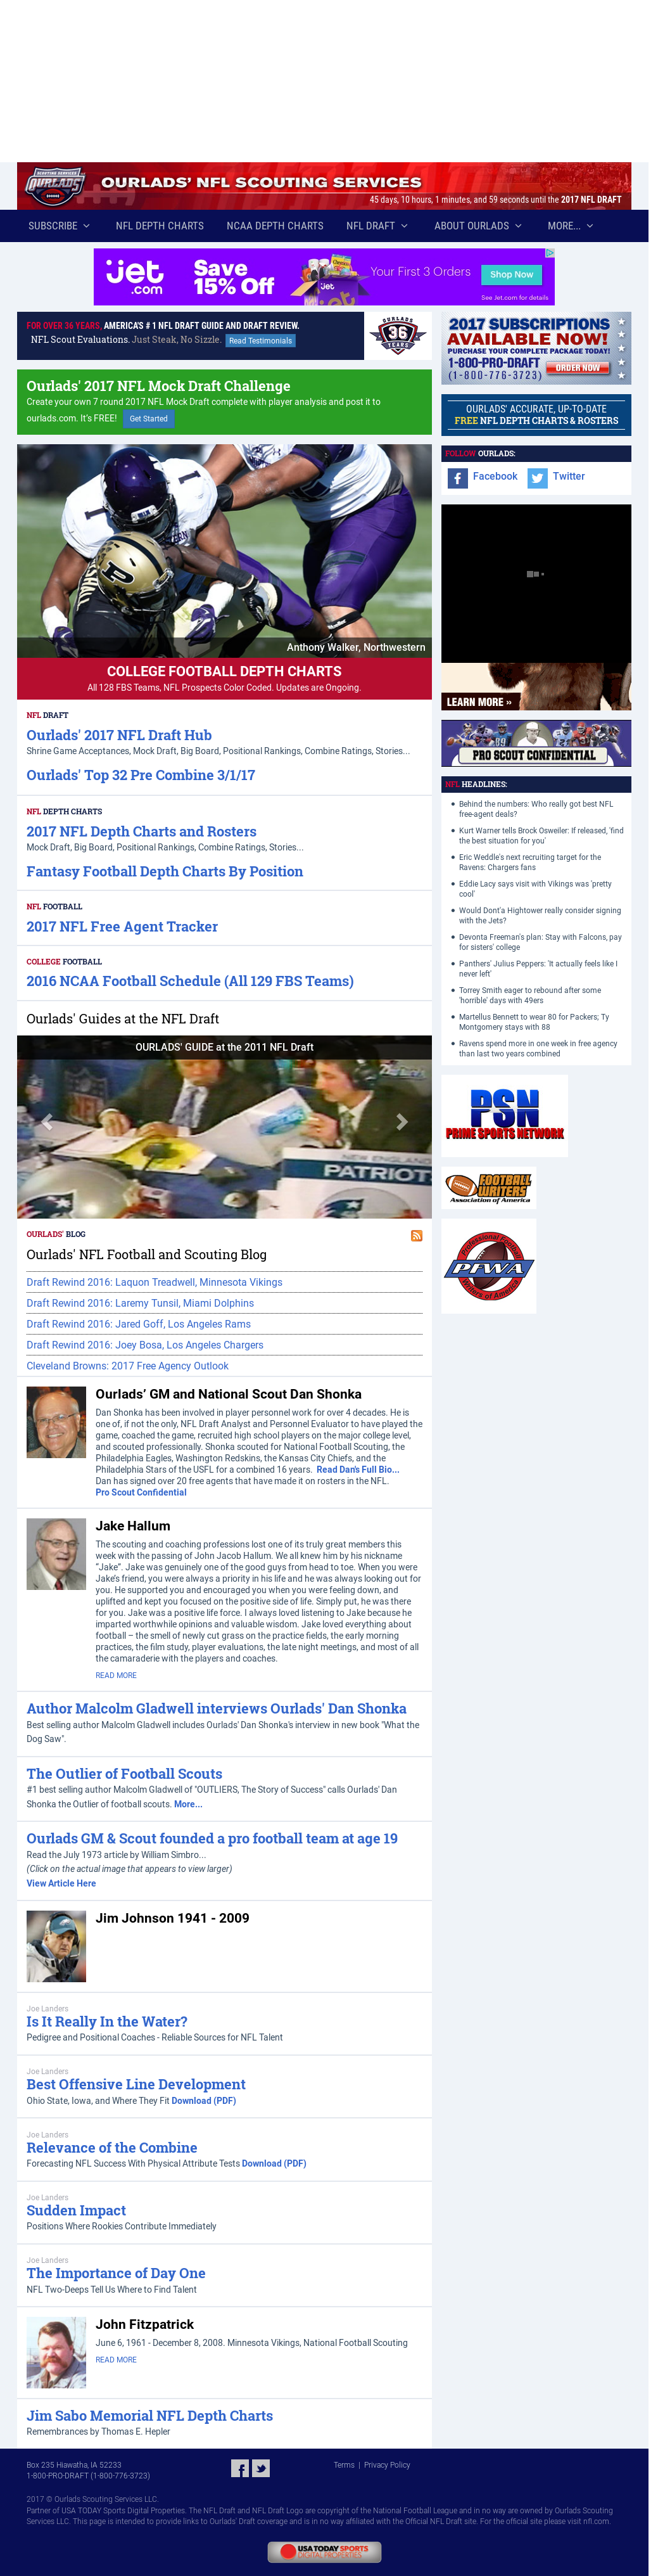 Ourlads Nfl Scouting Services Competitors, Revenue and Employees ...